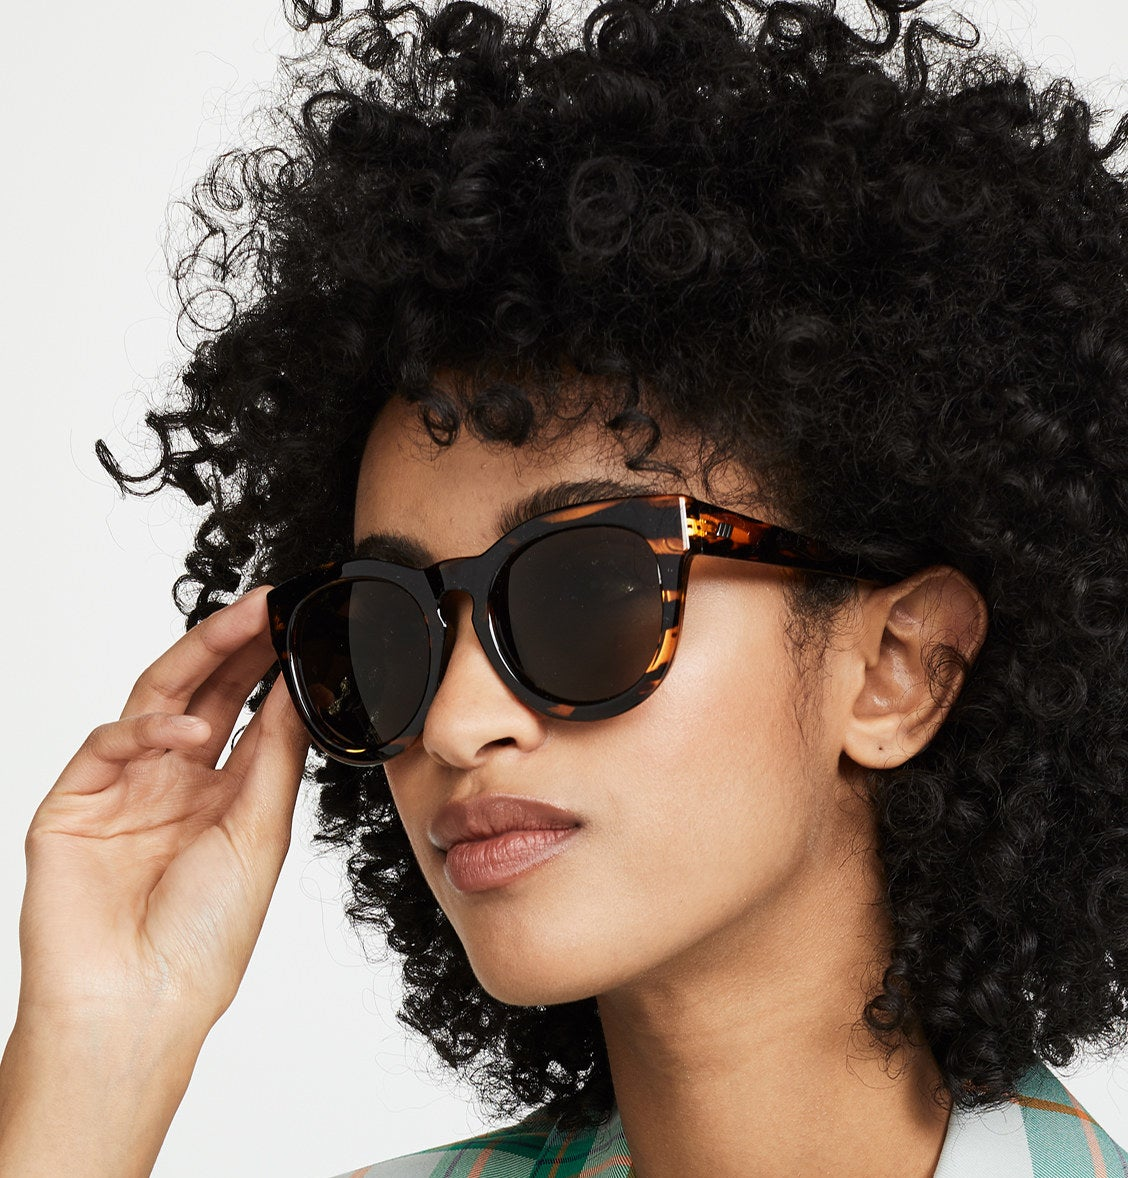 Close-up of model wearing sunglasses with green plaid jacket.